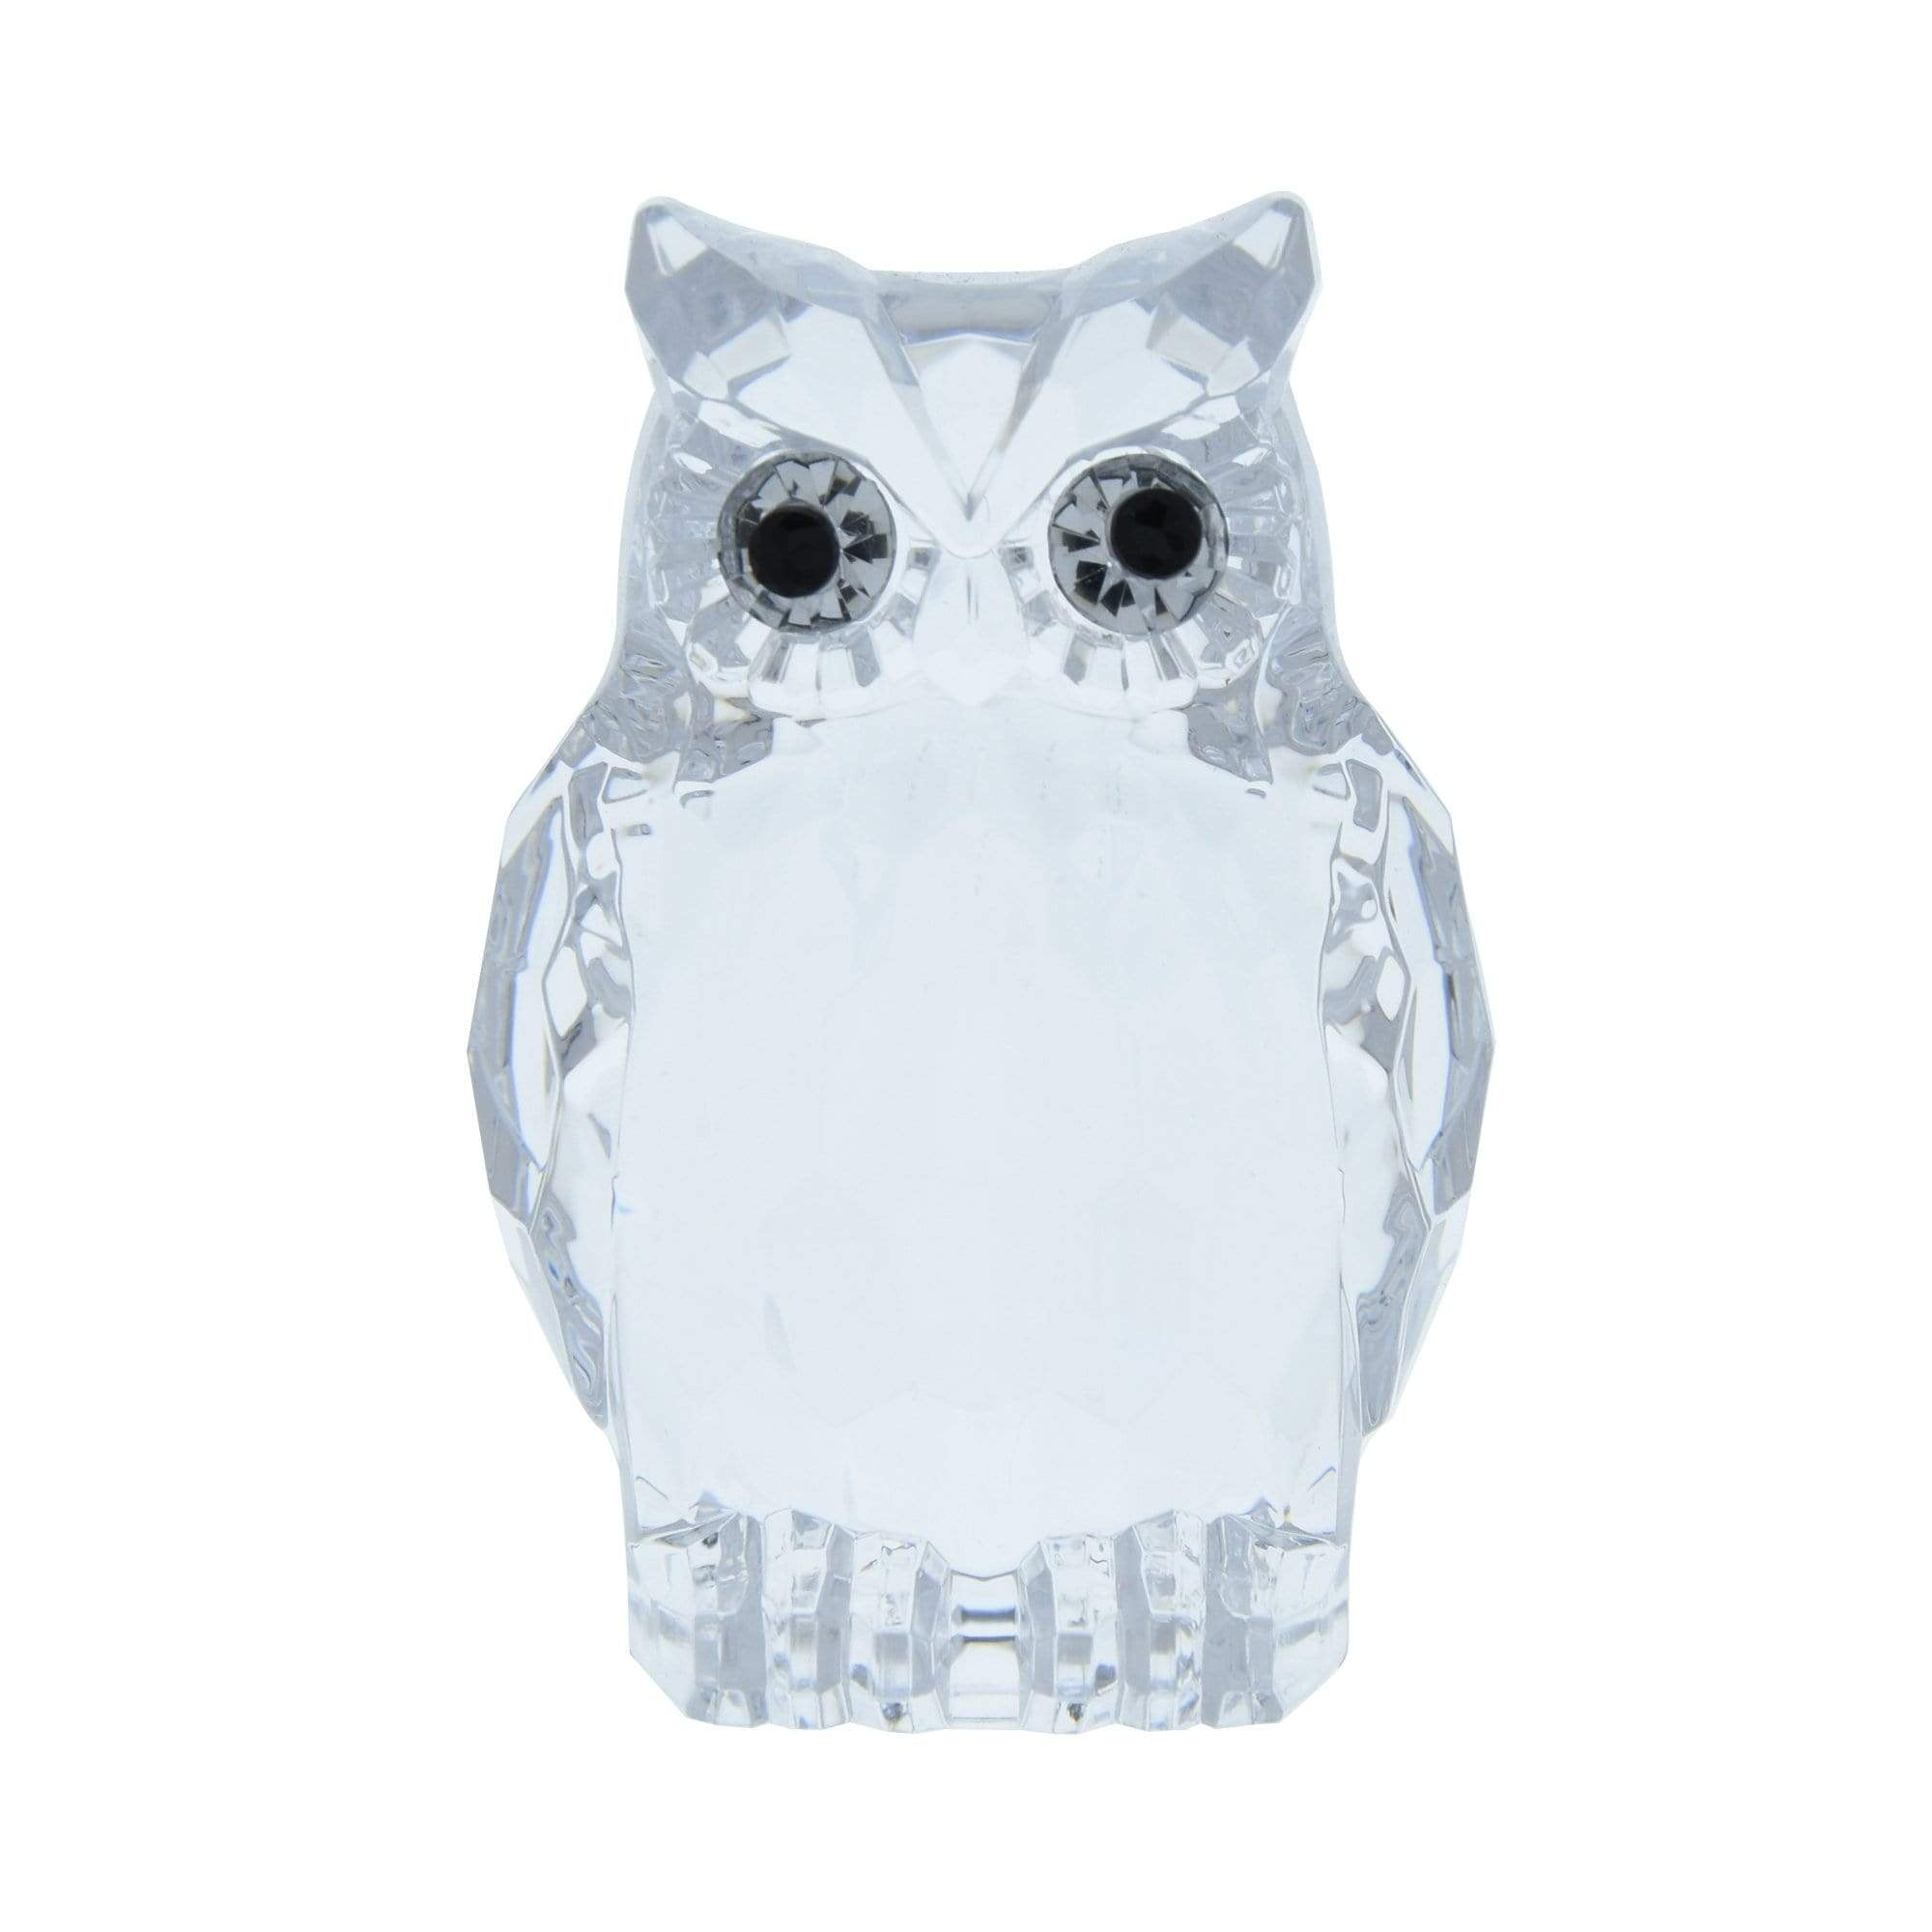 Candlelight Home Animals & Insects Owl Ornament Large Clear 8.5cm 6PK